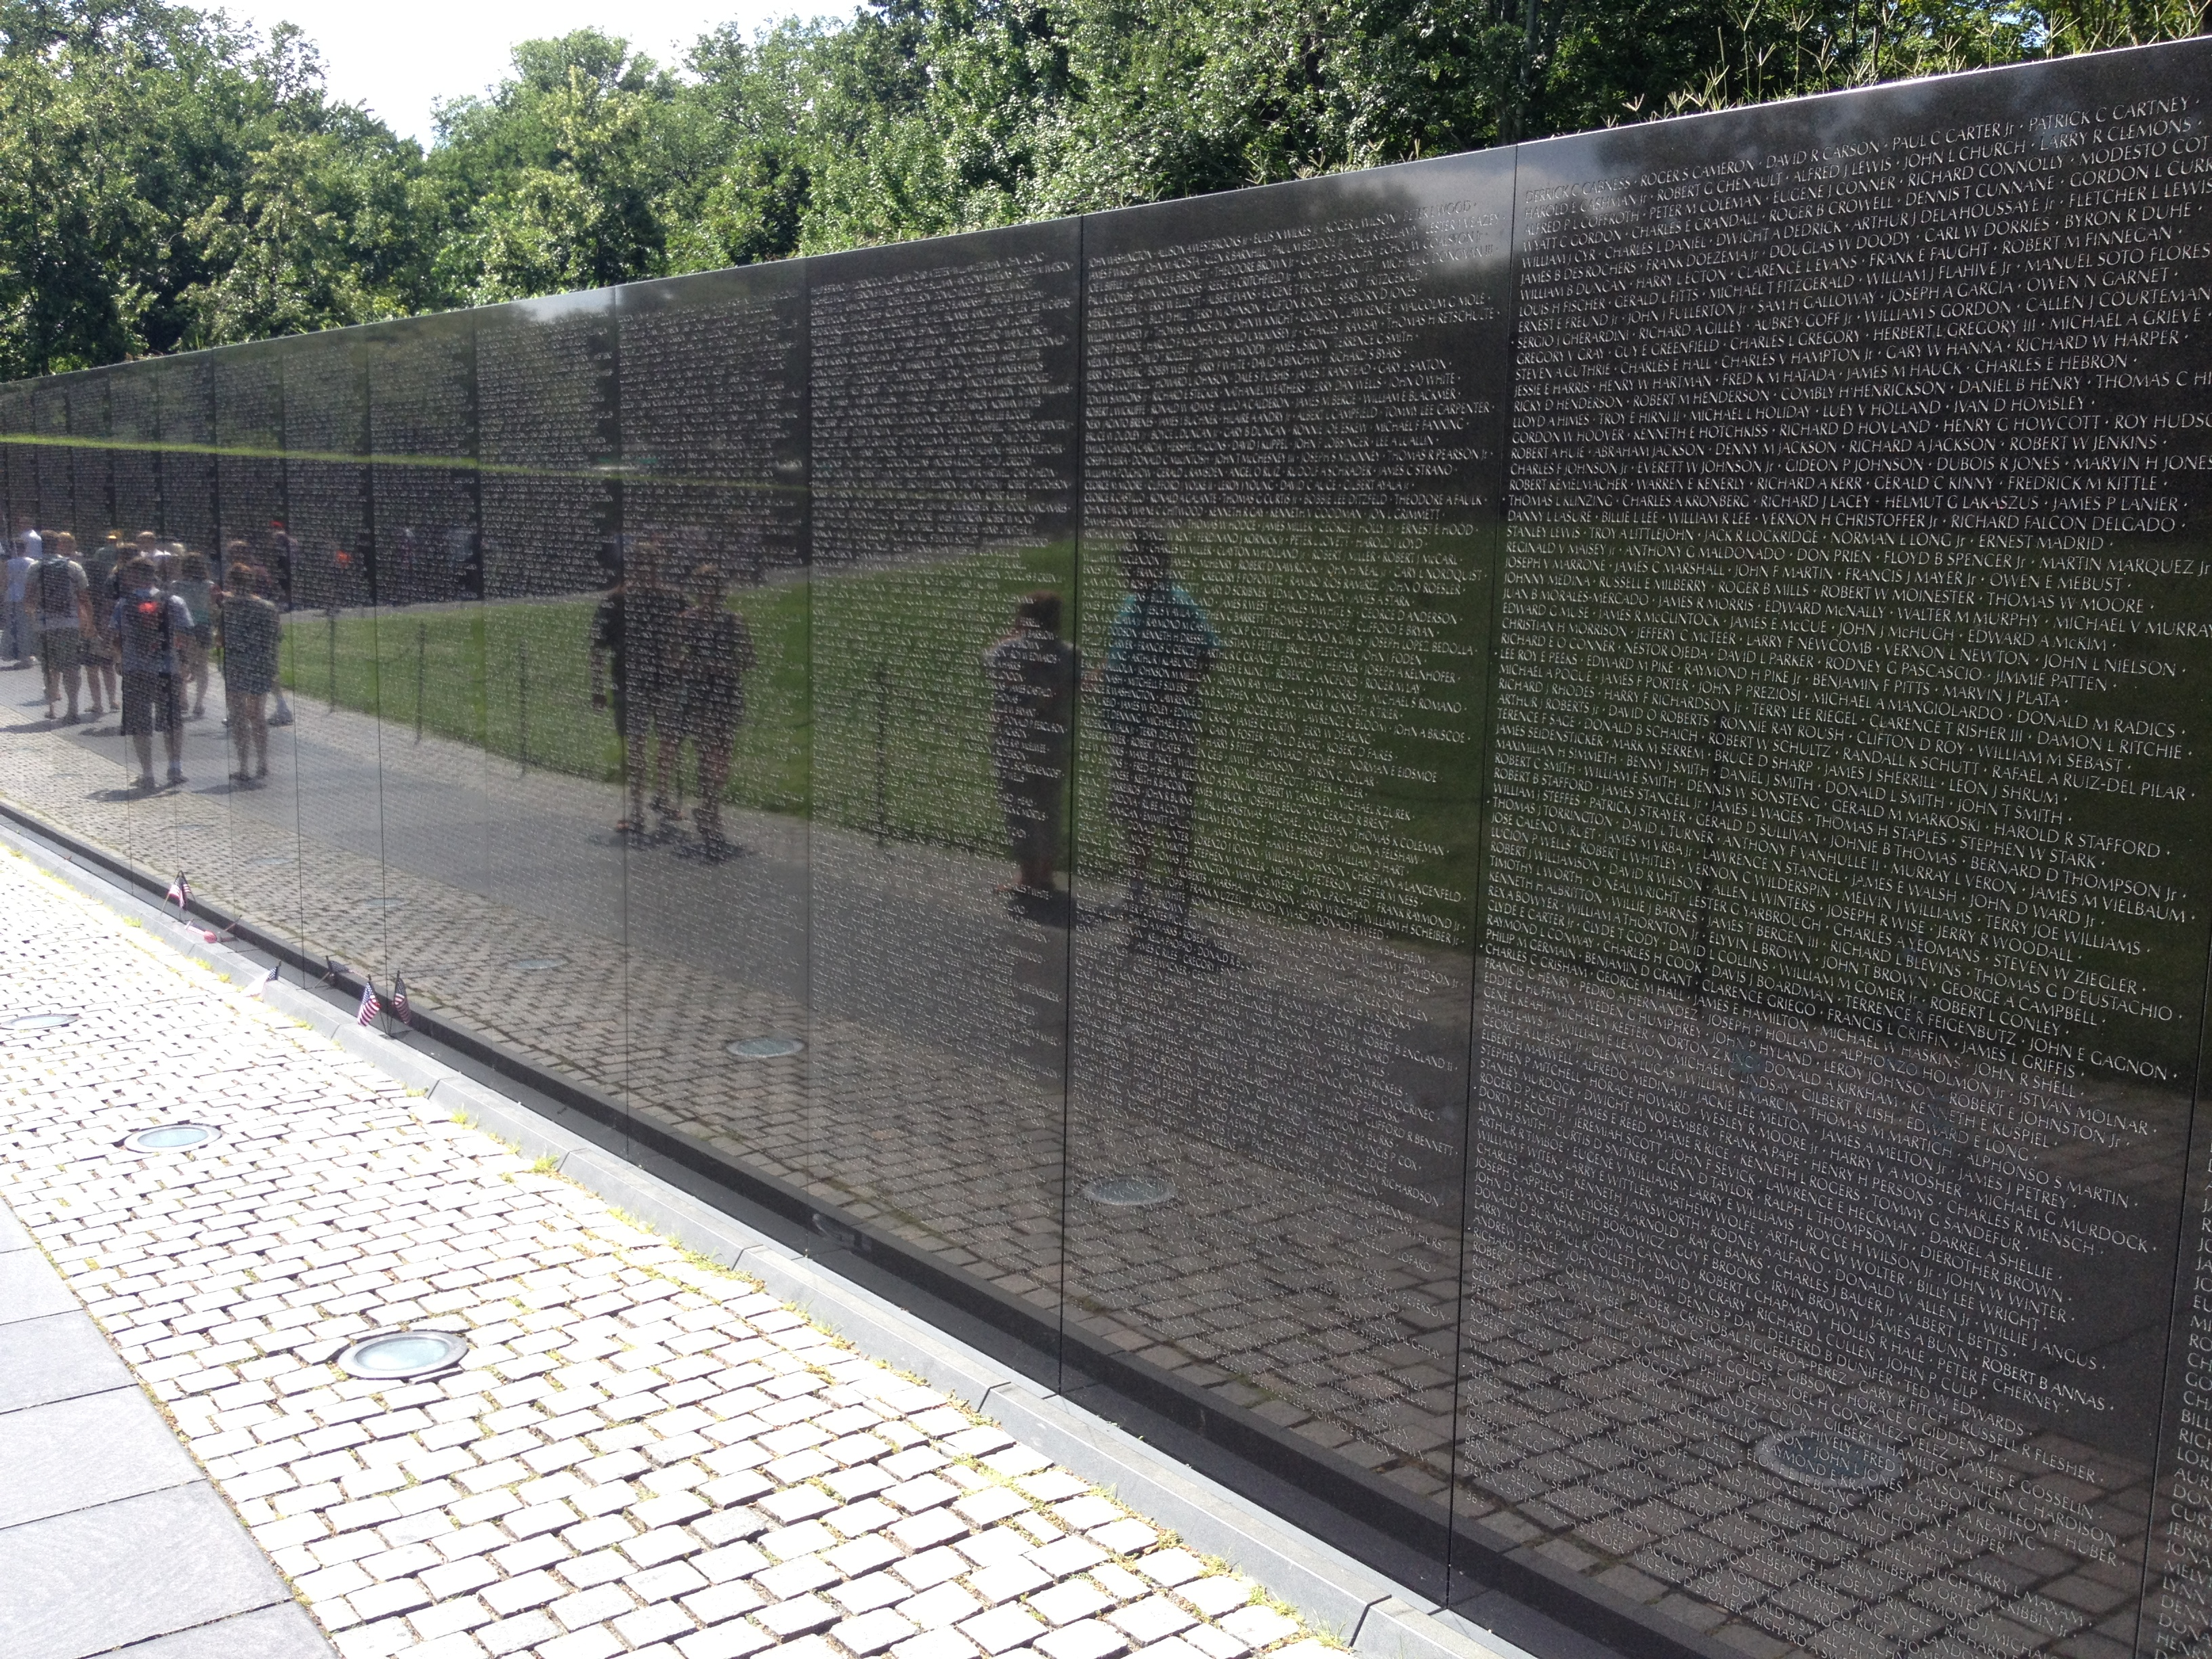 The Memorial Wall Is Made Up Of Two 246u2032 9u2033 Long Gabbro Walls, Etched With  The Names Of The Servicemen Being Honored In Panels Of Horizontal Rows.